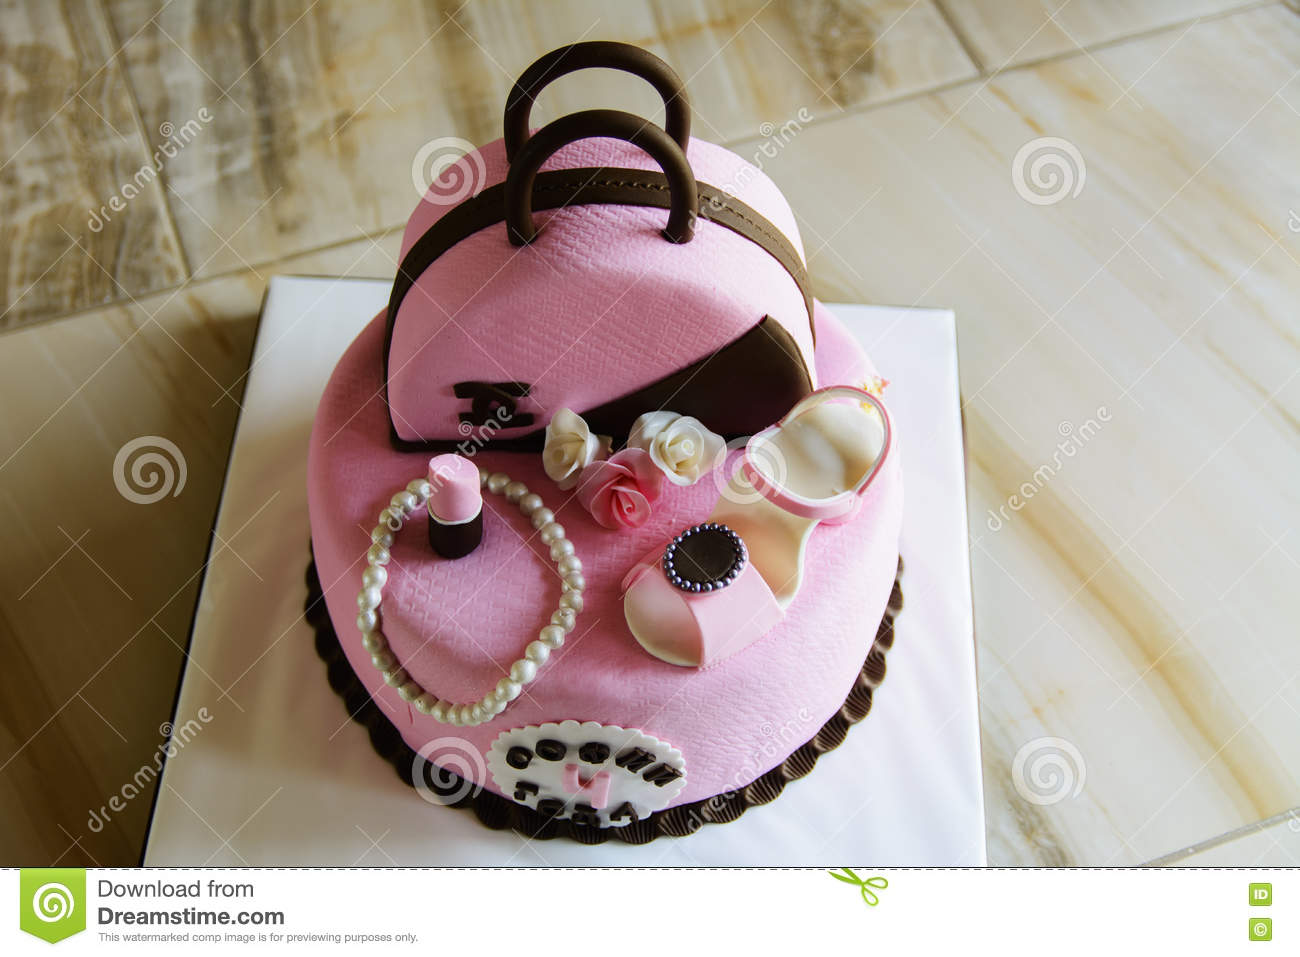 Exclusive Birthday Cake For Baby